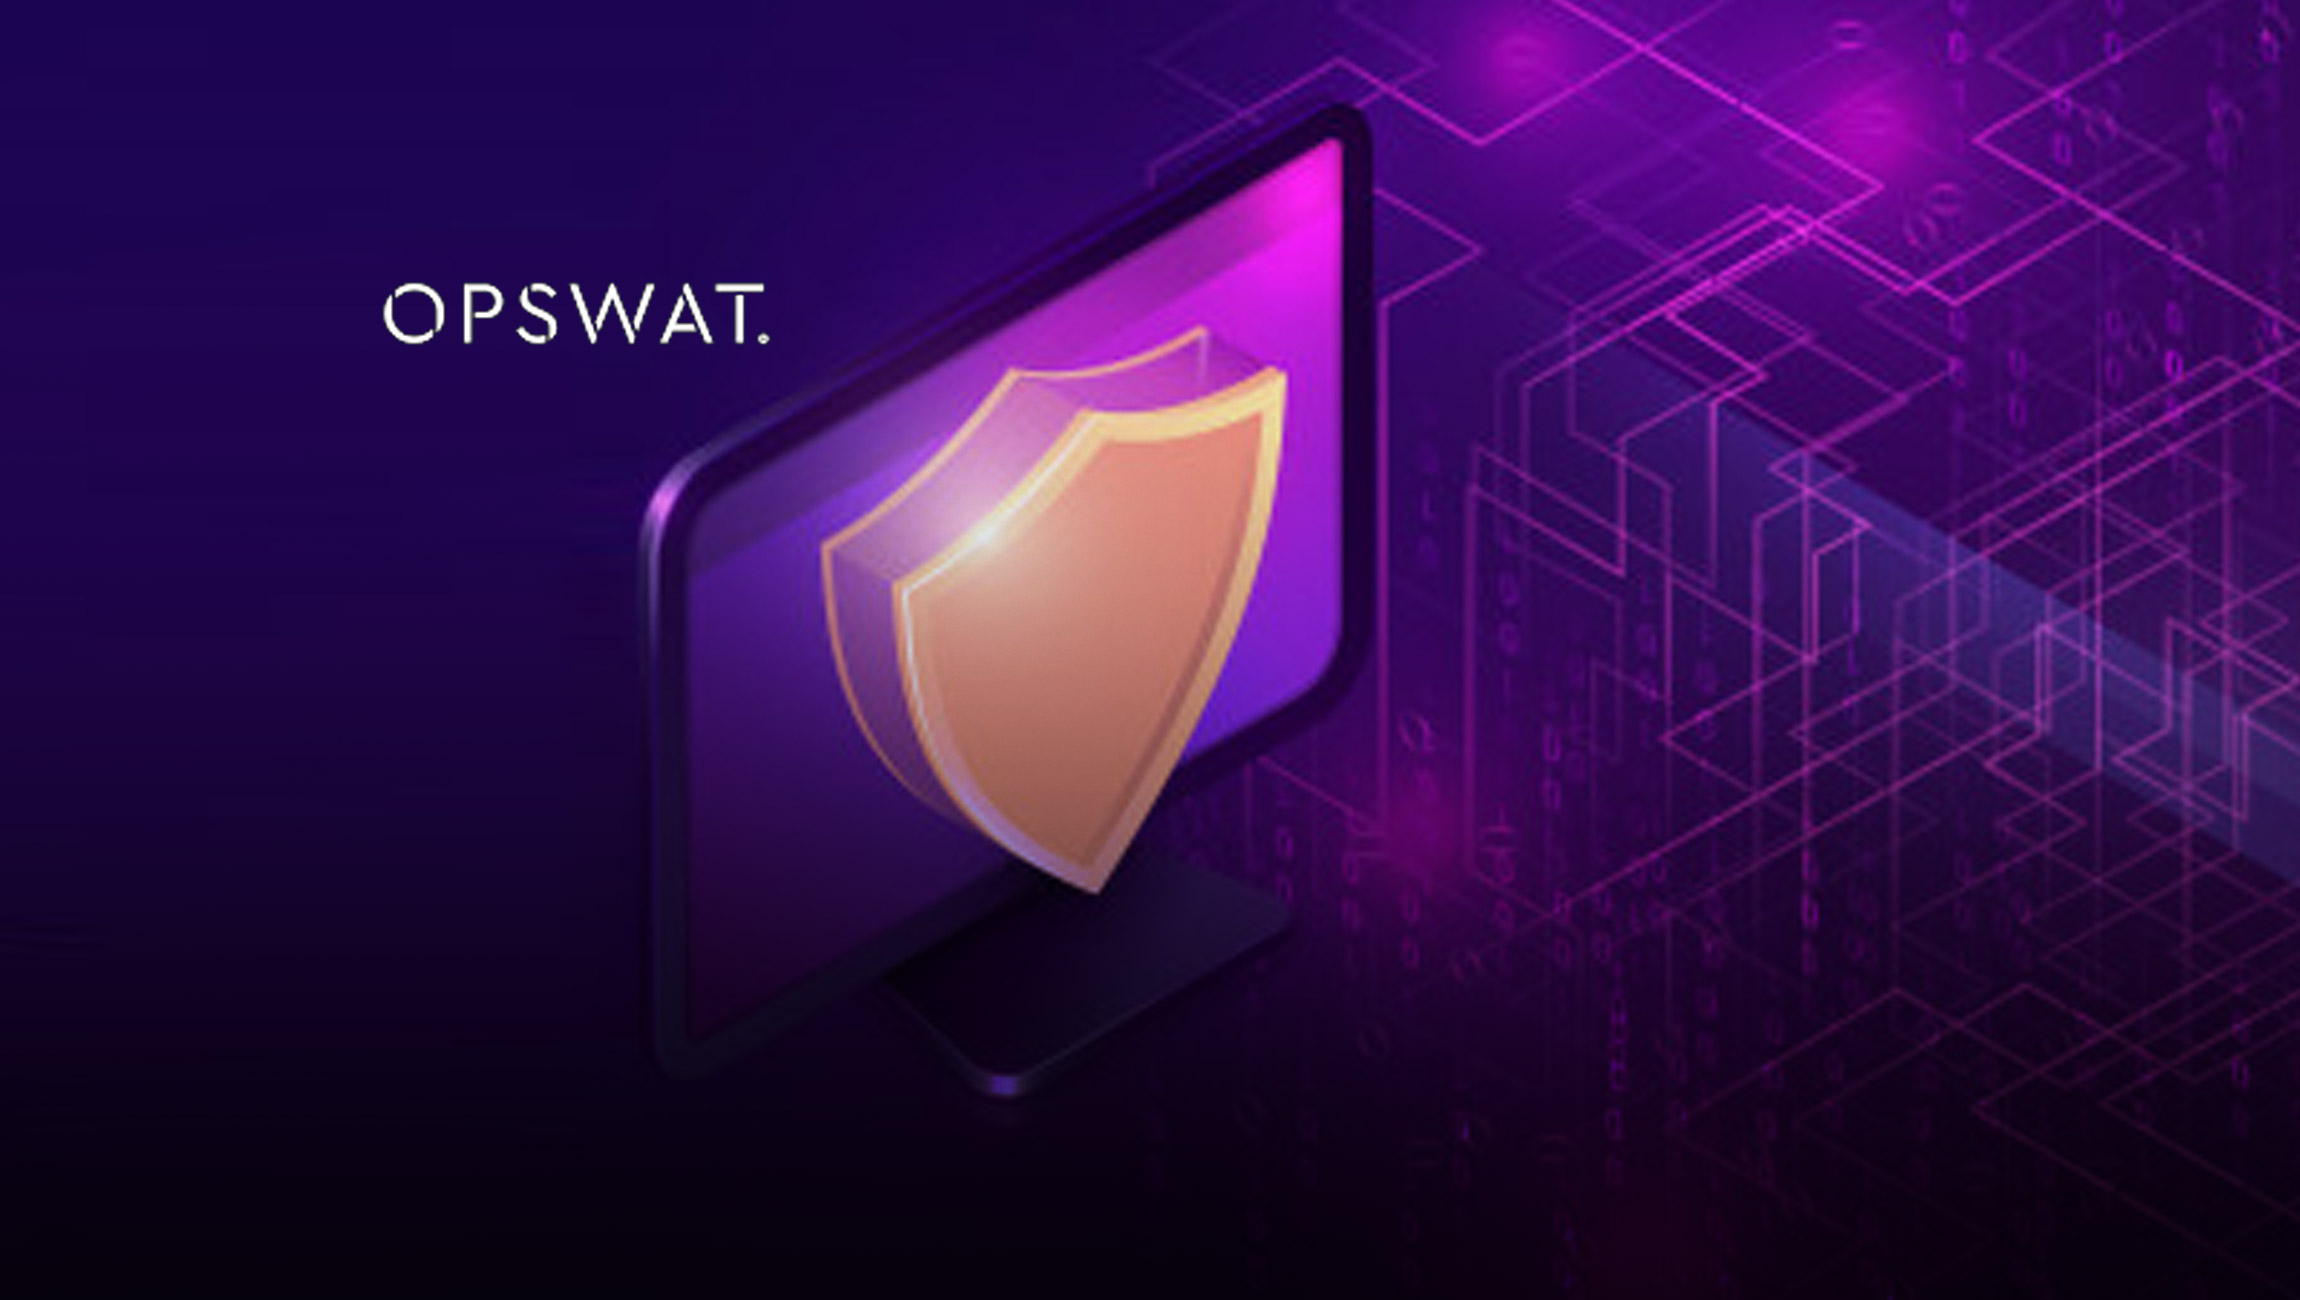 OPSWAT Announces Expansion of Cybersecurity Training Program to Address Skill Gaps for Critical Infrastructure Protection (CIP) Professionals